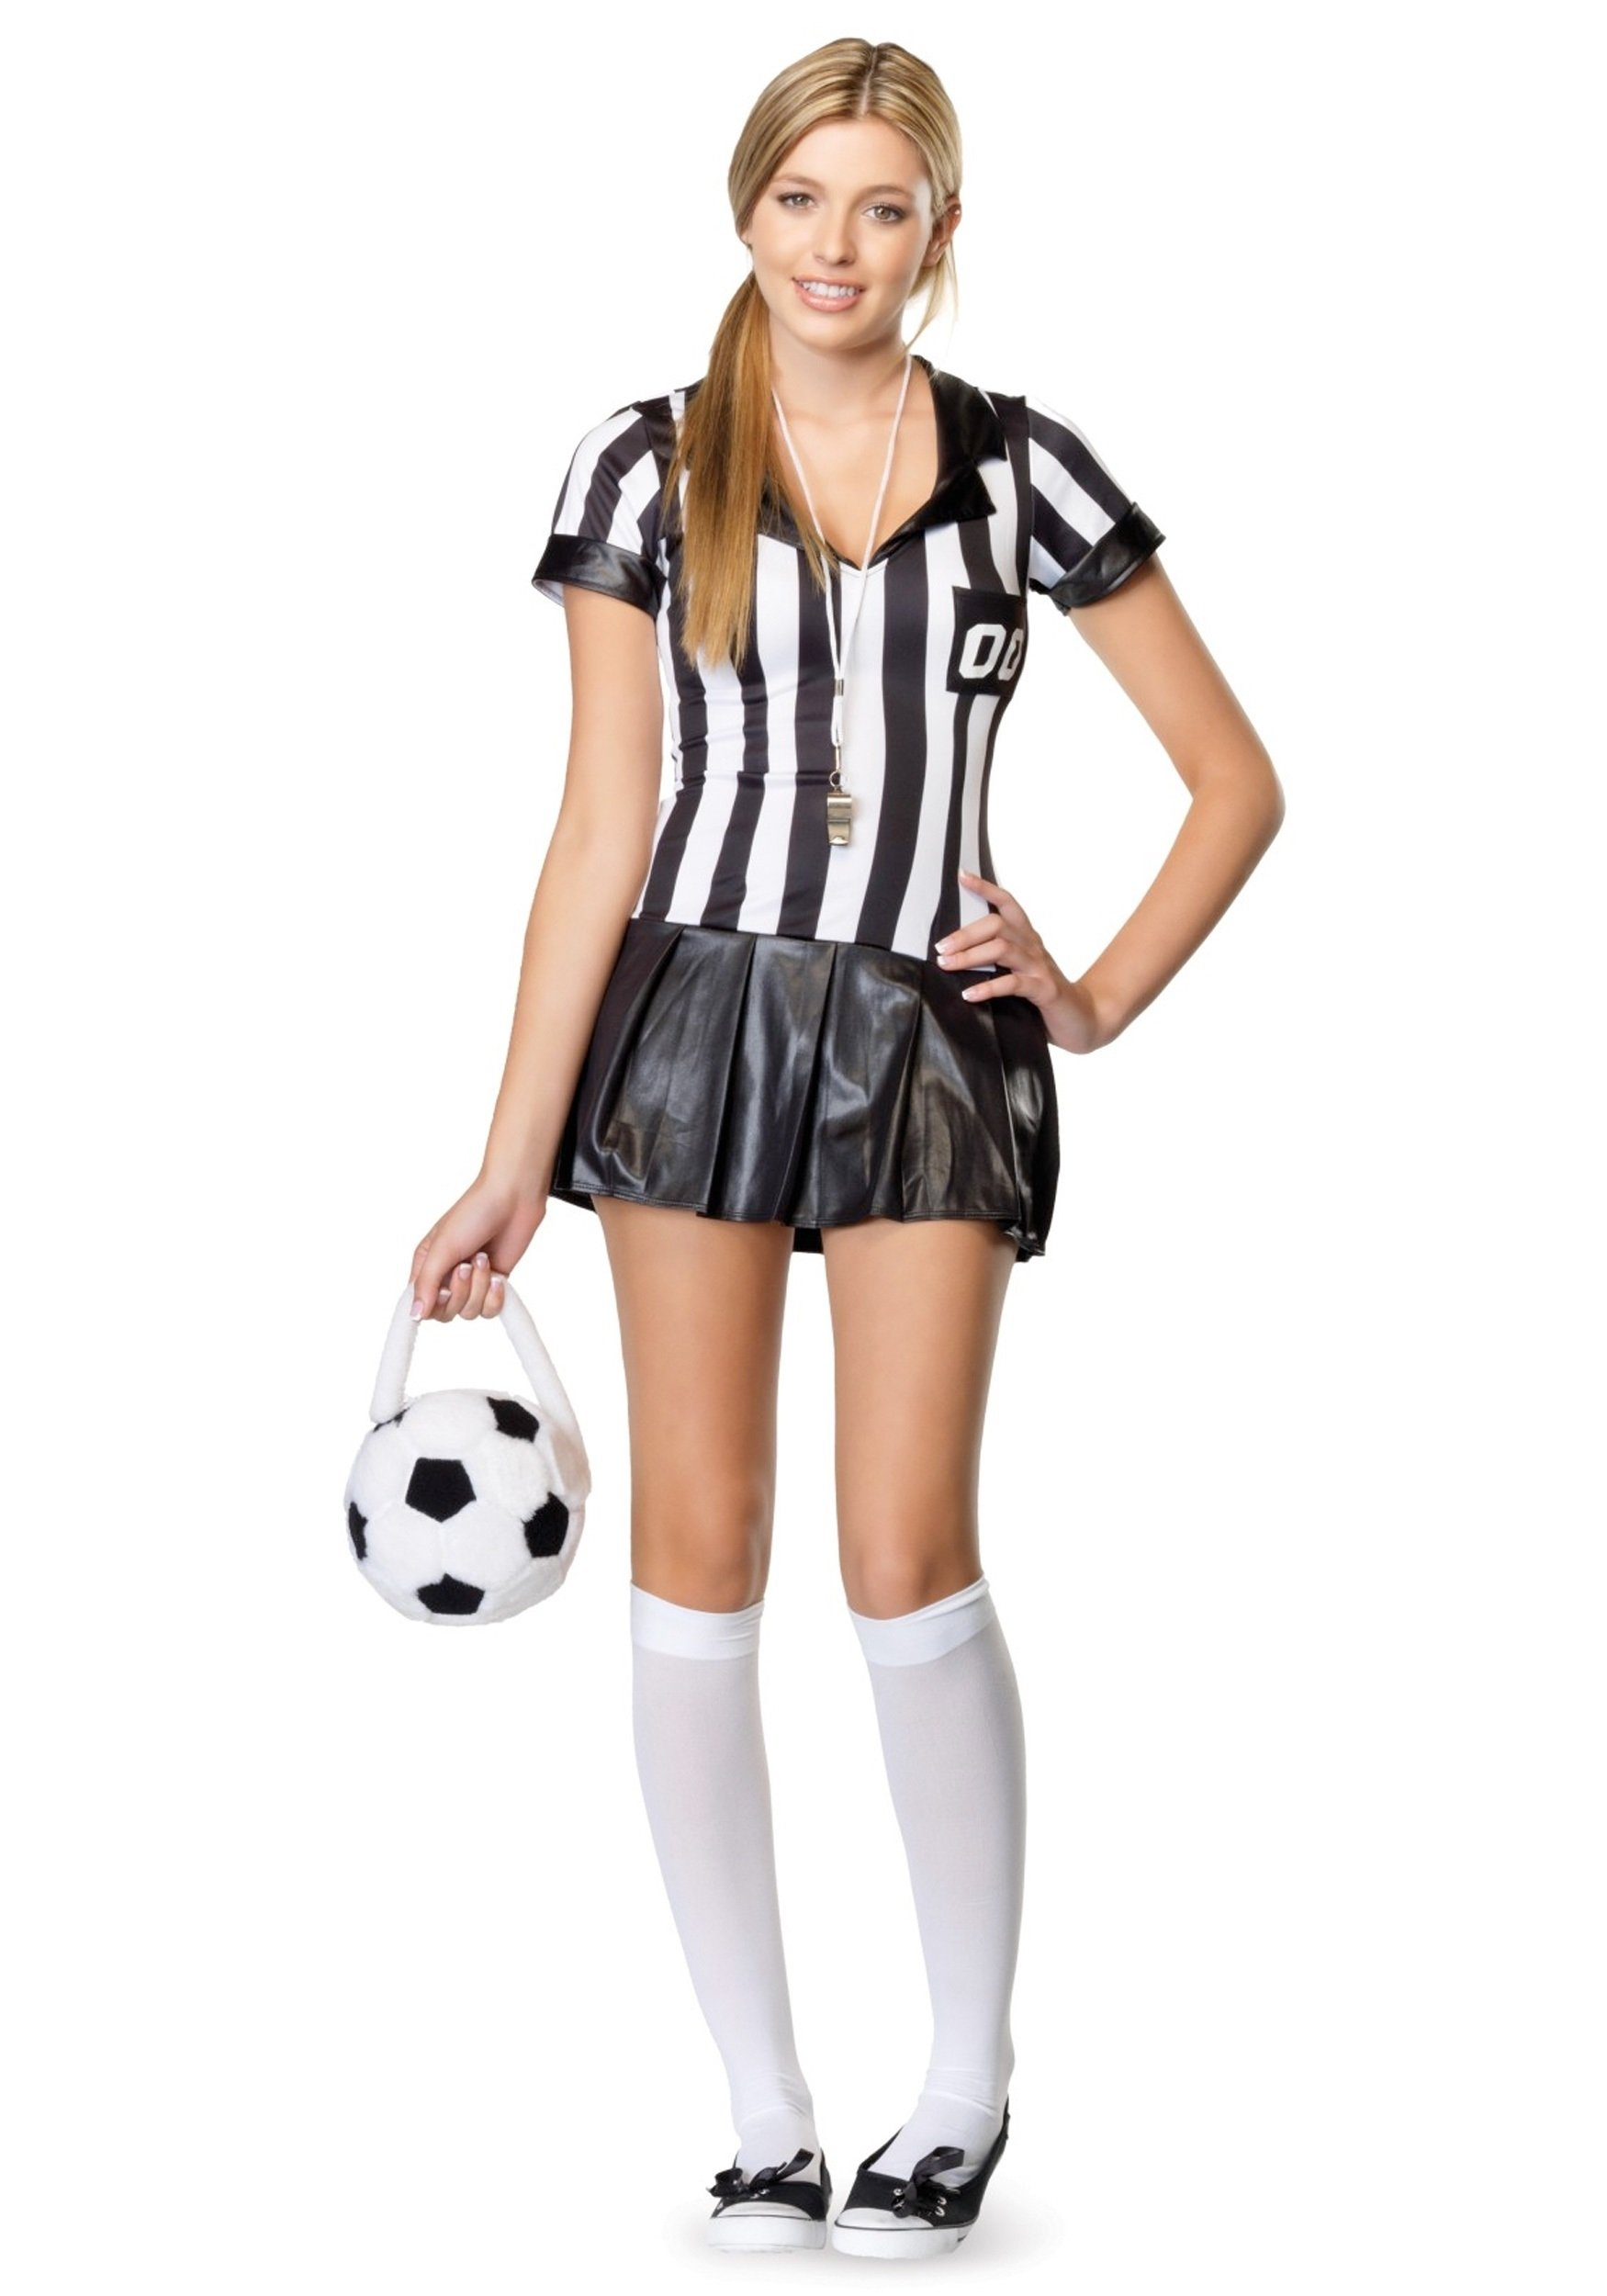 10 Beautiful Cute Costume Ideas For Girls cuteteencostumes home costume ideas sports costumes referee 2 2020